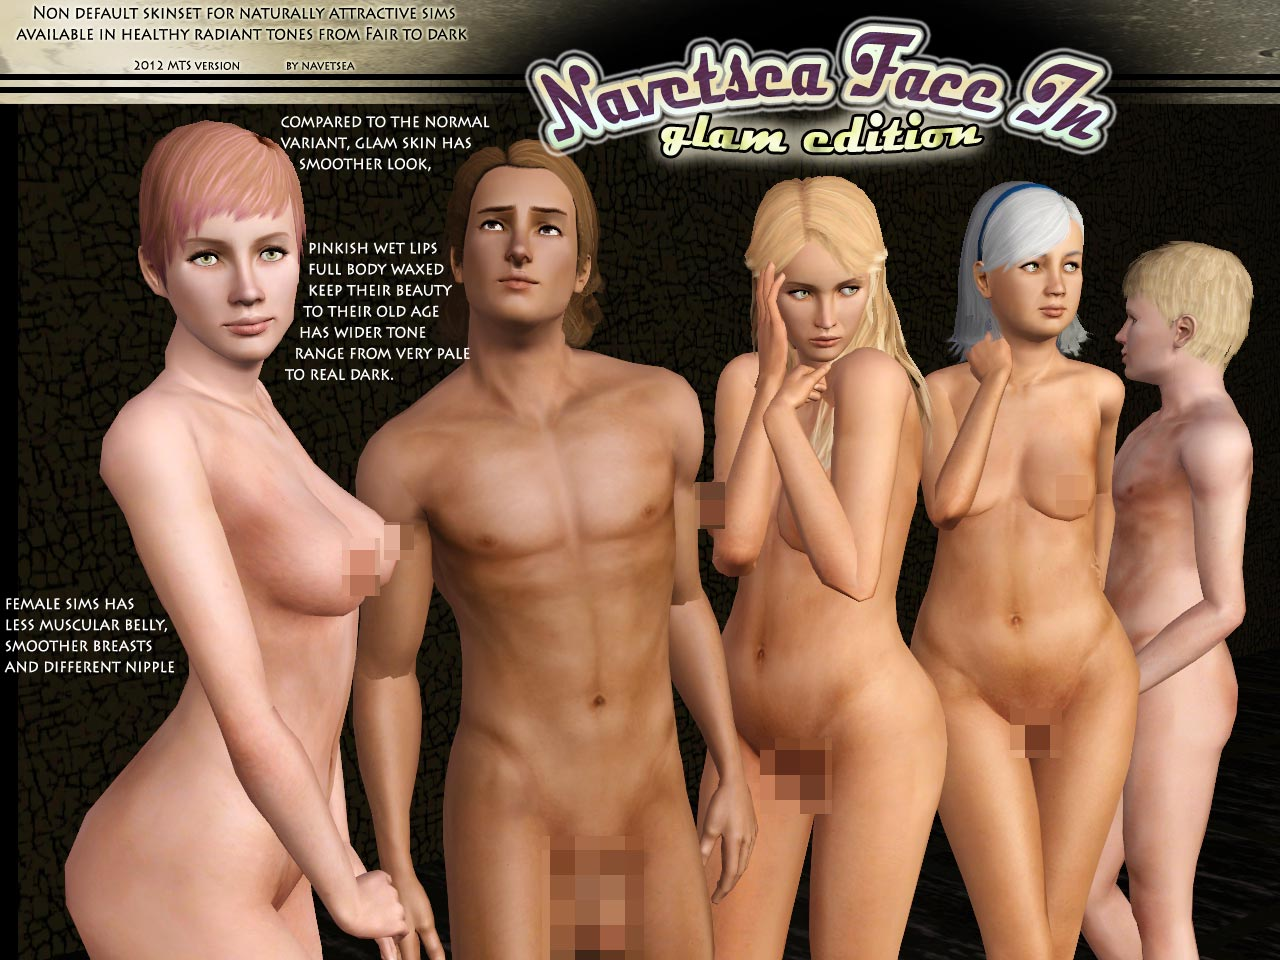 Sims 3 sexy body nude anime comic